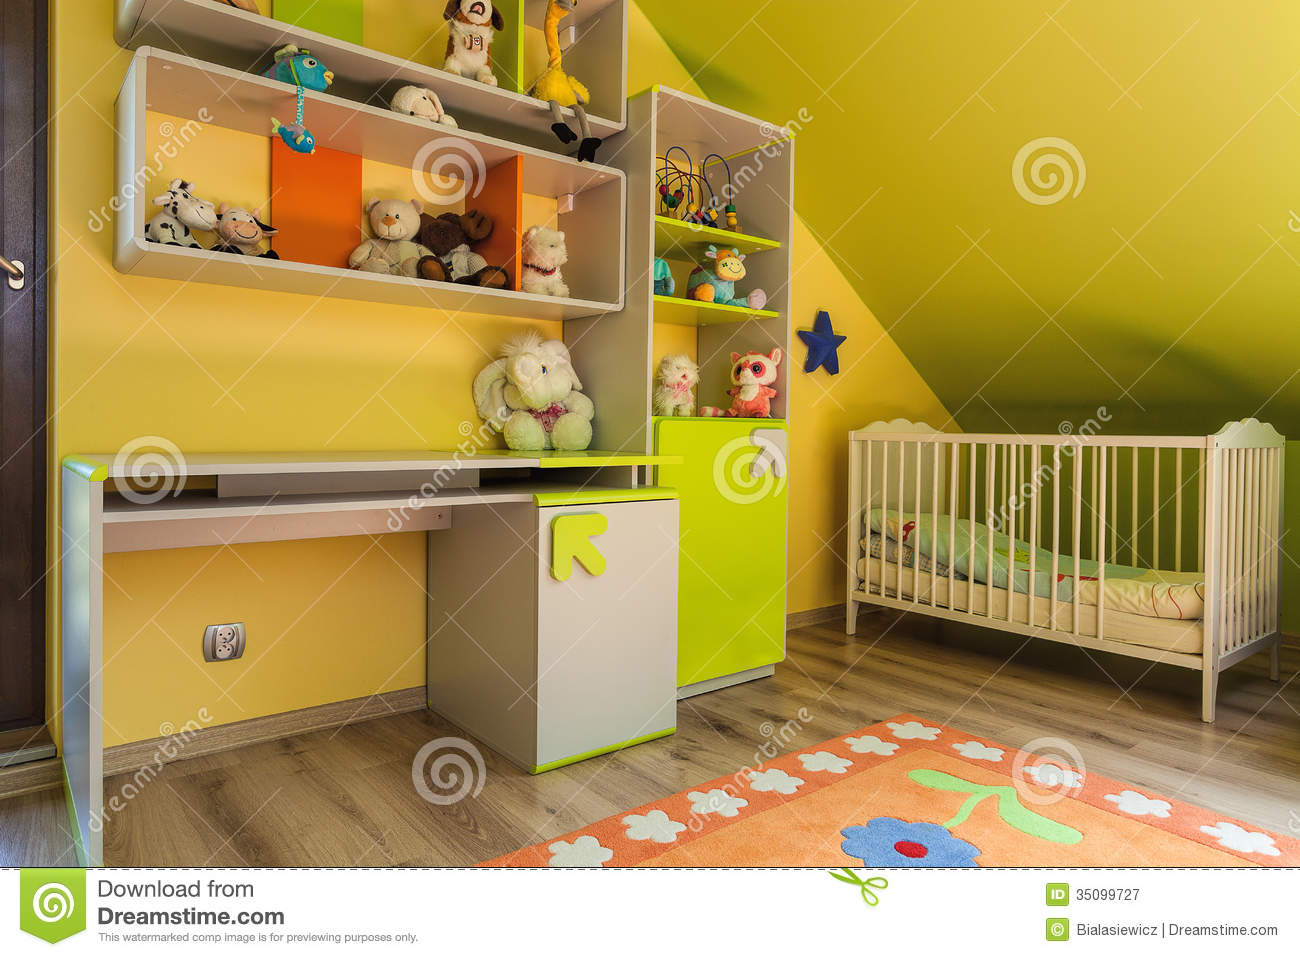 Urban Apartment Green And Yellow Interior Stock Image